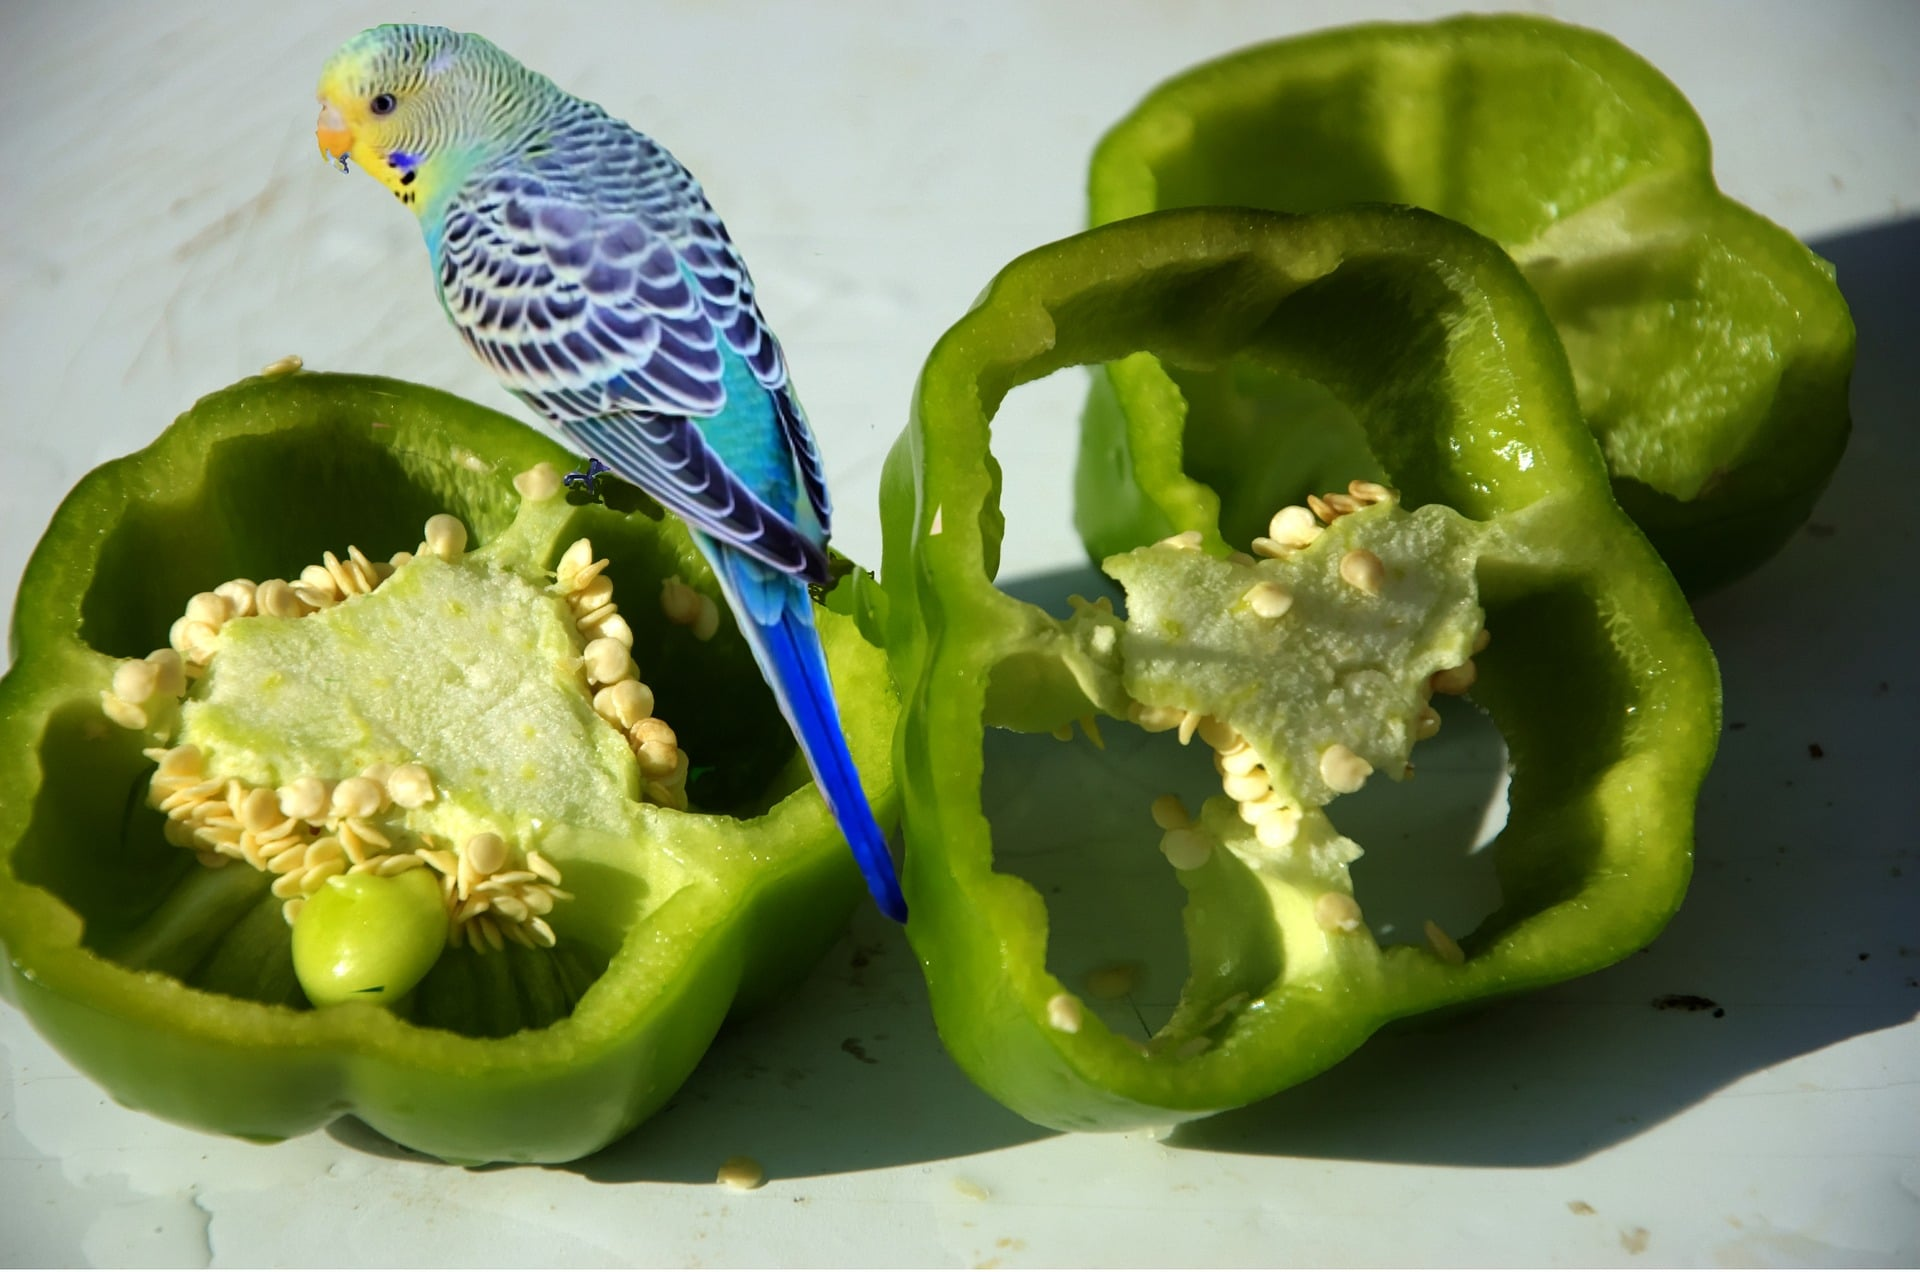 Blue budgerigar with yellow face sitting on slices of green bell pepper, pictured on white background.